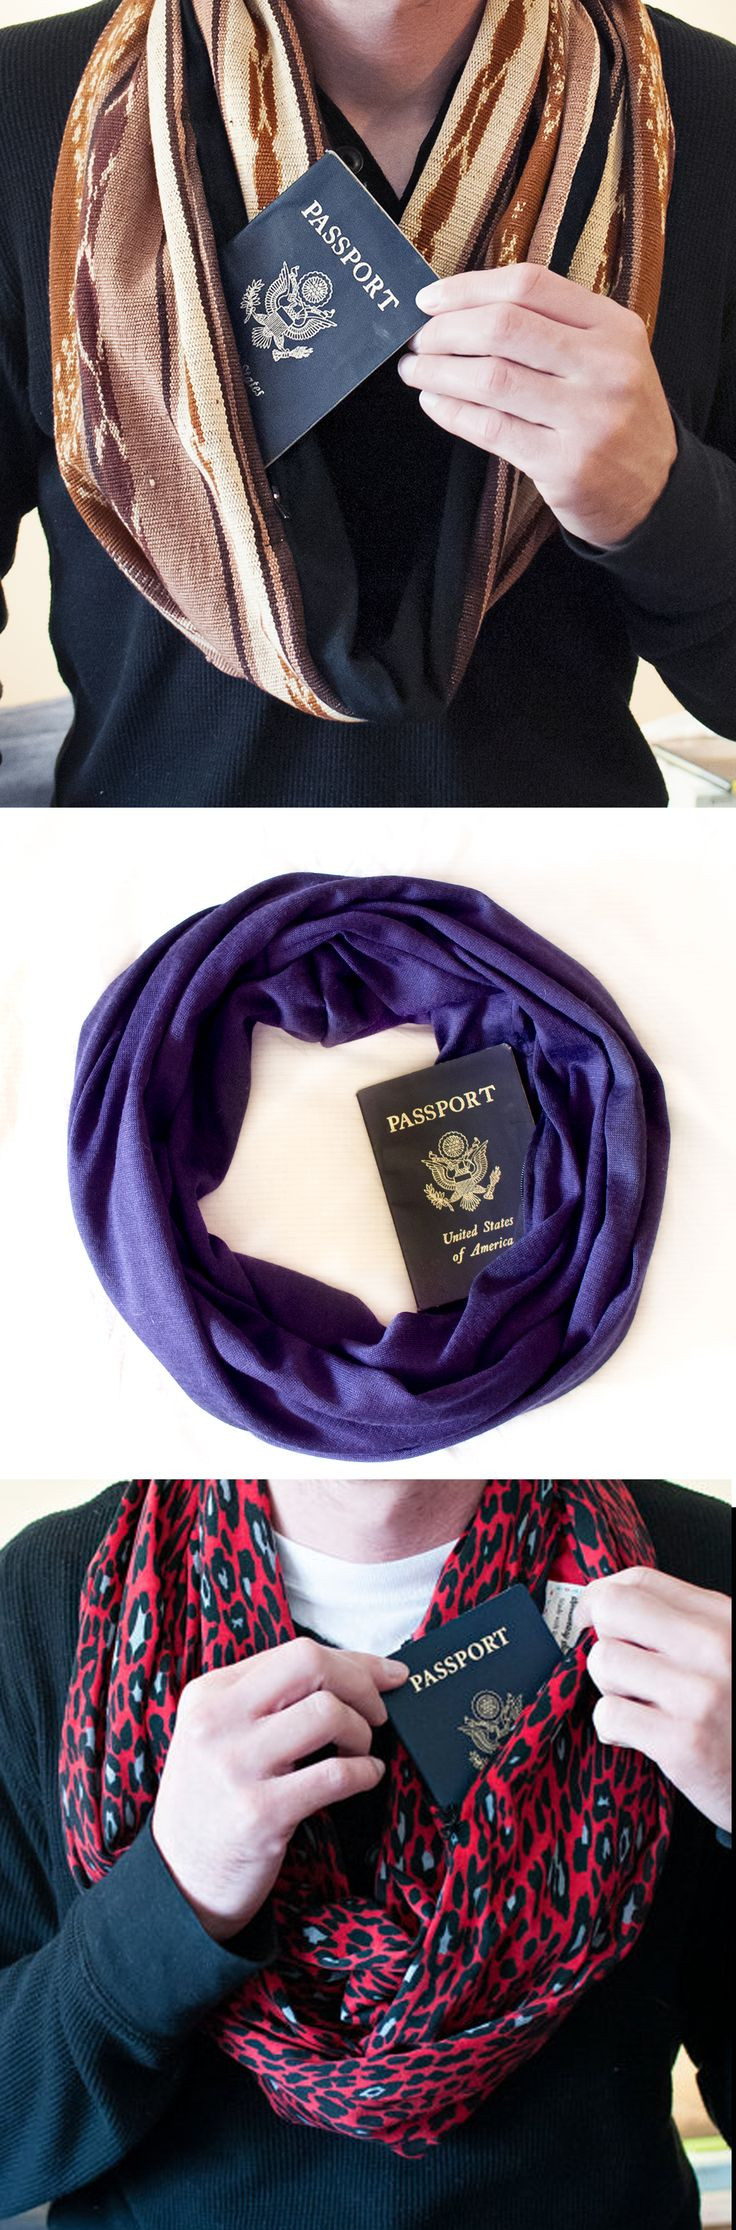 No pickpockets here! Hide your passport & money when you travel in a very clever way with Speakeasy Travel Scarves.